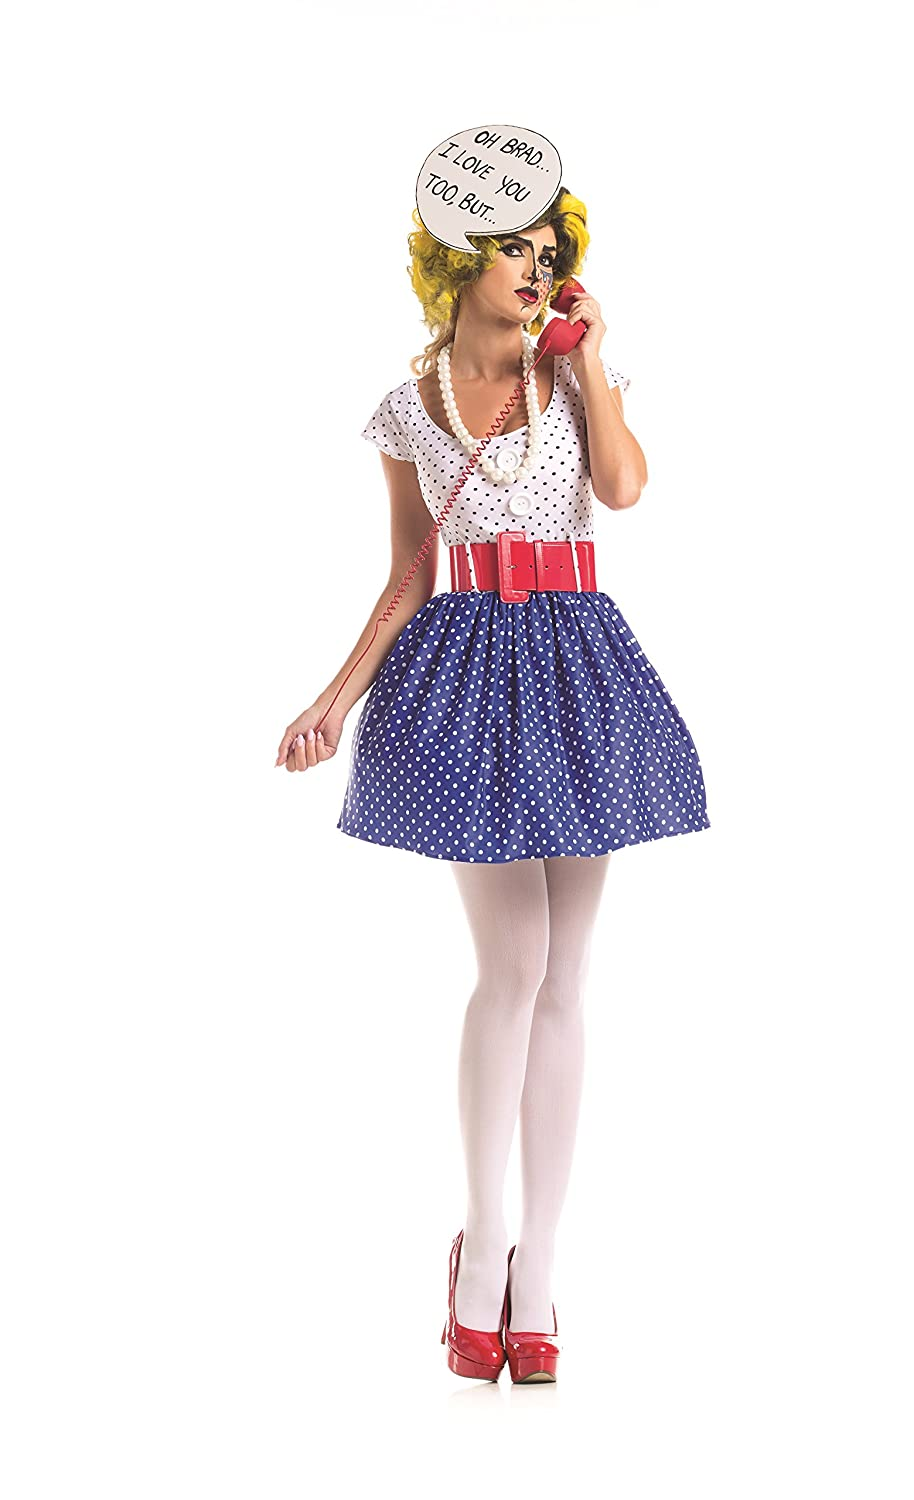 1950s Costumes- Poodle Skirts, Grease, Monroe, Pin Up, I Love Lucy Party King Womens Pop Art Cutie Costume Set $76.99 AT vintagedancer.com